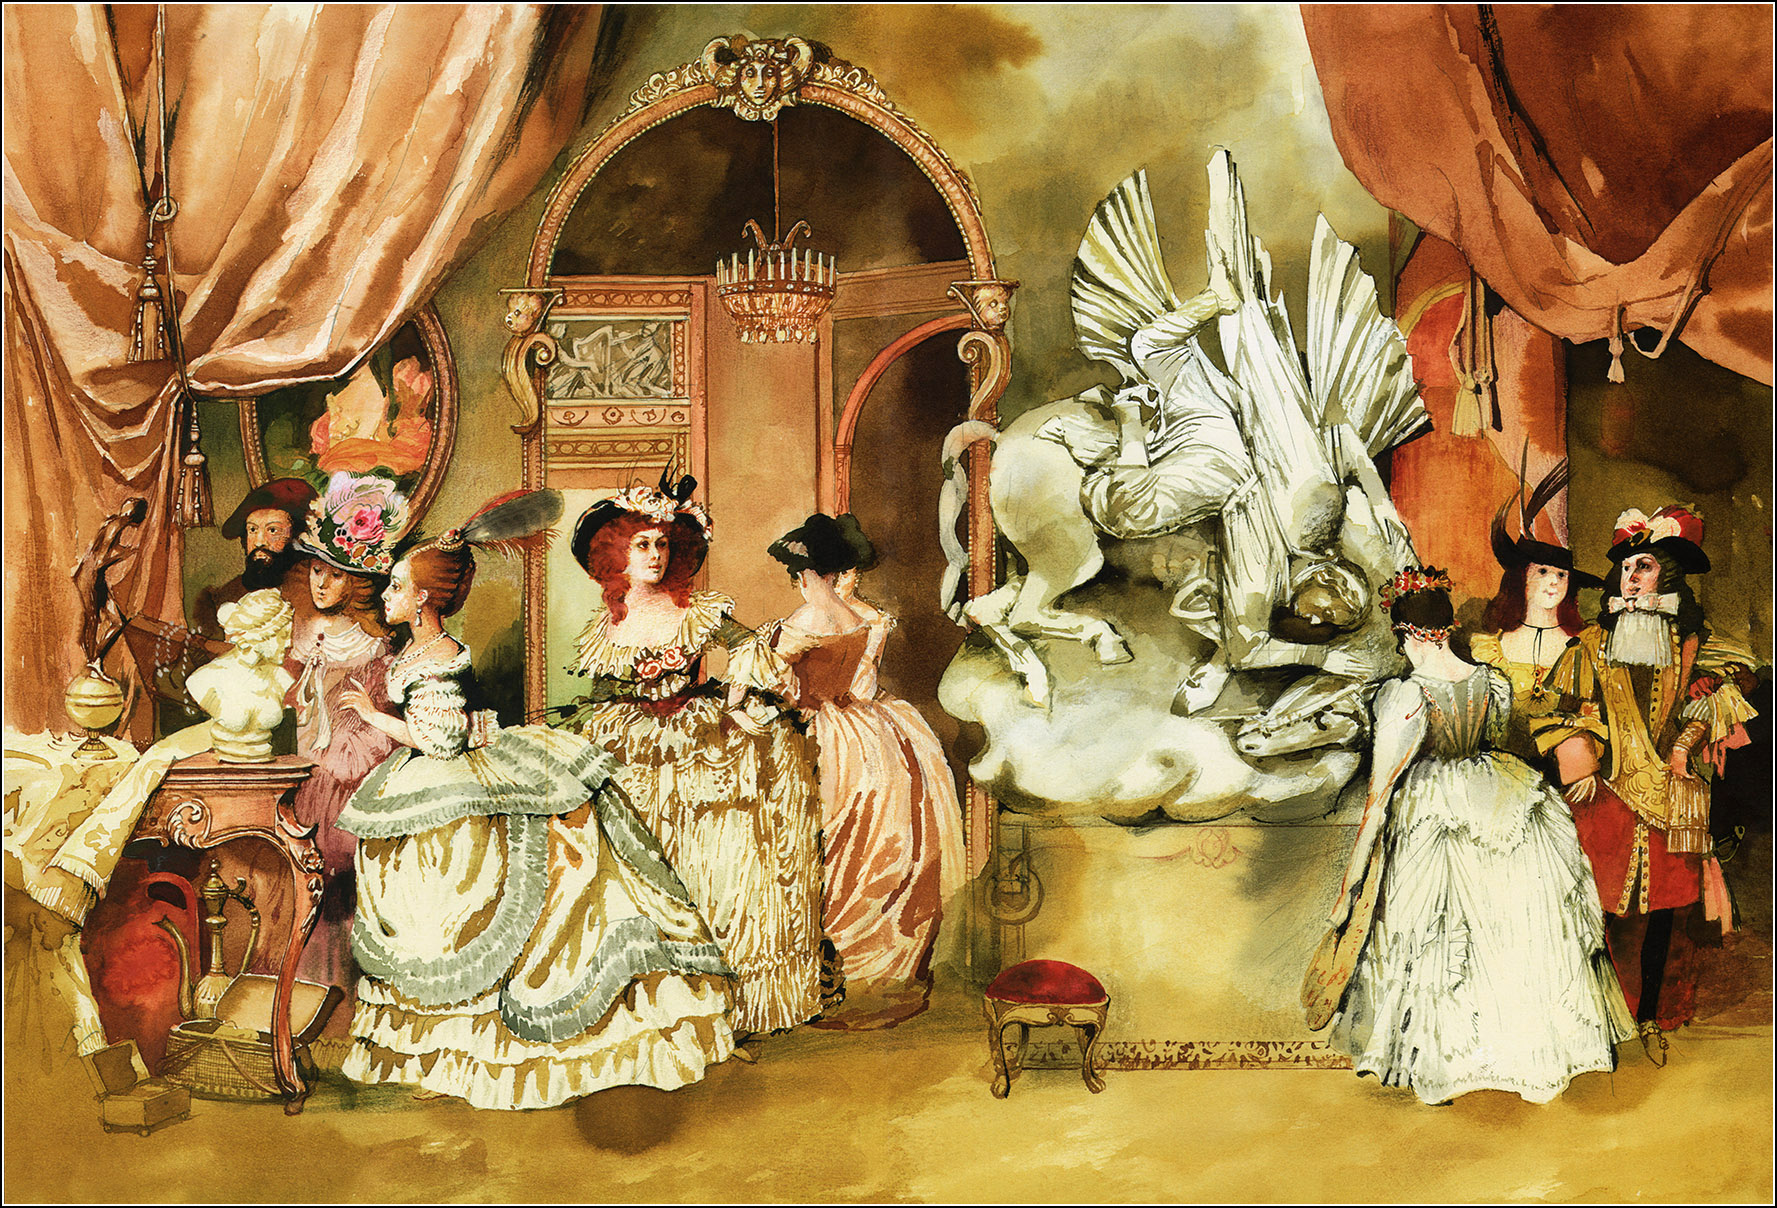 analysis of perrault s cinderella The cinderella from charles perrault's adaptation shows this quite clearly, where the message in that story is virtue, hard work and forgiveness are vital for accomplishment for his cinderella exemplifies these qualities throughout the story.